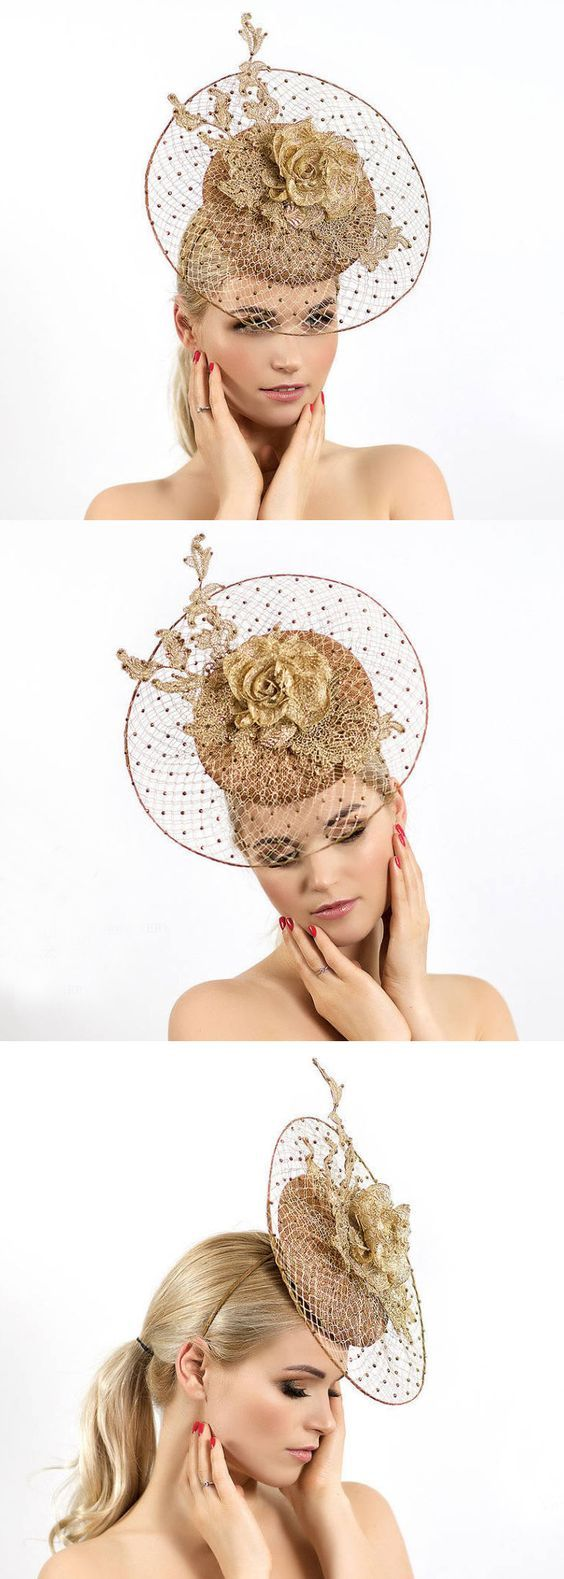 """Golden beige elegant and dressy Fascinator mini hat """"Francesca"""" with beautiful handmade silk flowers and lace for Kentucky Derby, Del Mar, Epsom, Royal Ascot. Gold Lace Veiled Floral Fascinator for Racing Day at the Races, Dubai World Cup racing fashion inspiration, spring wedding outfits. #kentuckyderby #royalascot #bridal #fascinators #springwedding #weddingguest  #weddings #derbyoutfits #racingfashion #ascothats #derbyhats #handmadeonetsy #affiliatelink #handmadeisbest #weddingoutfits"""